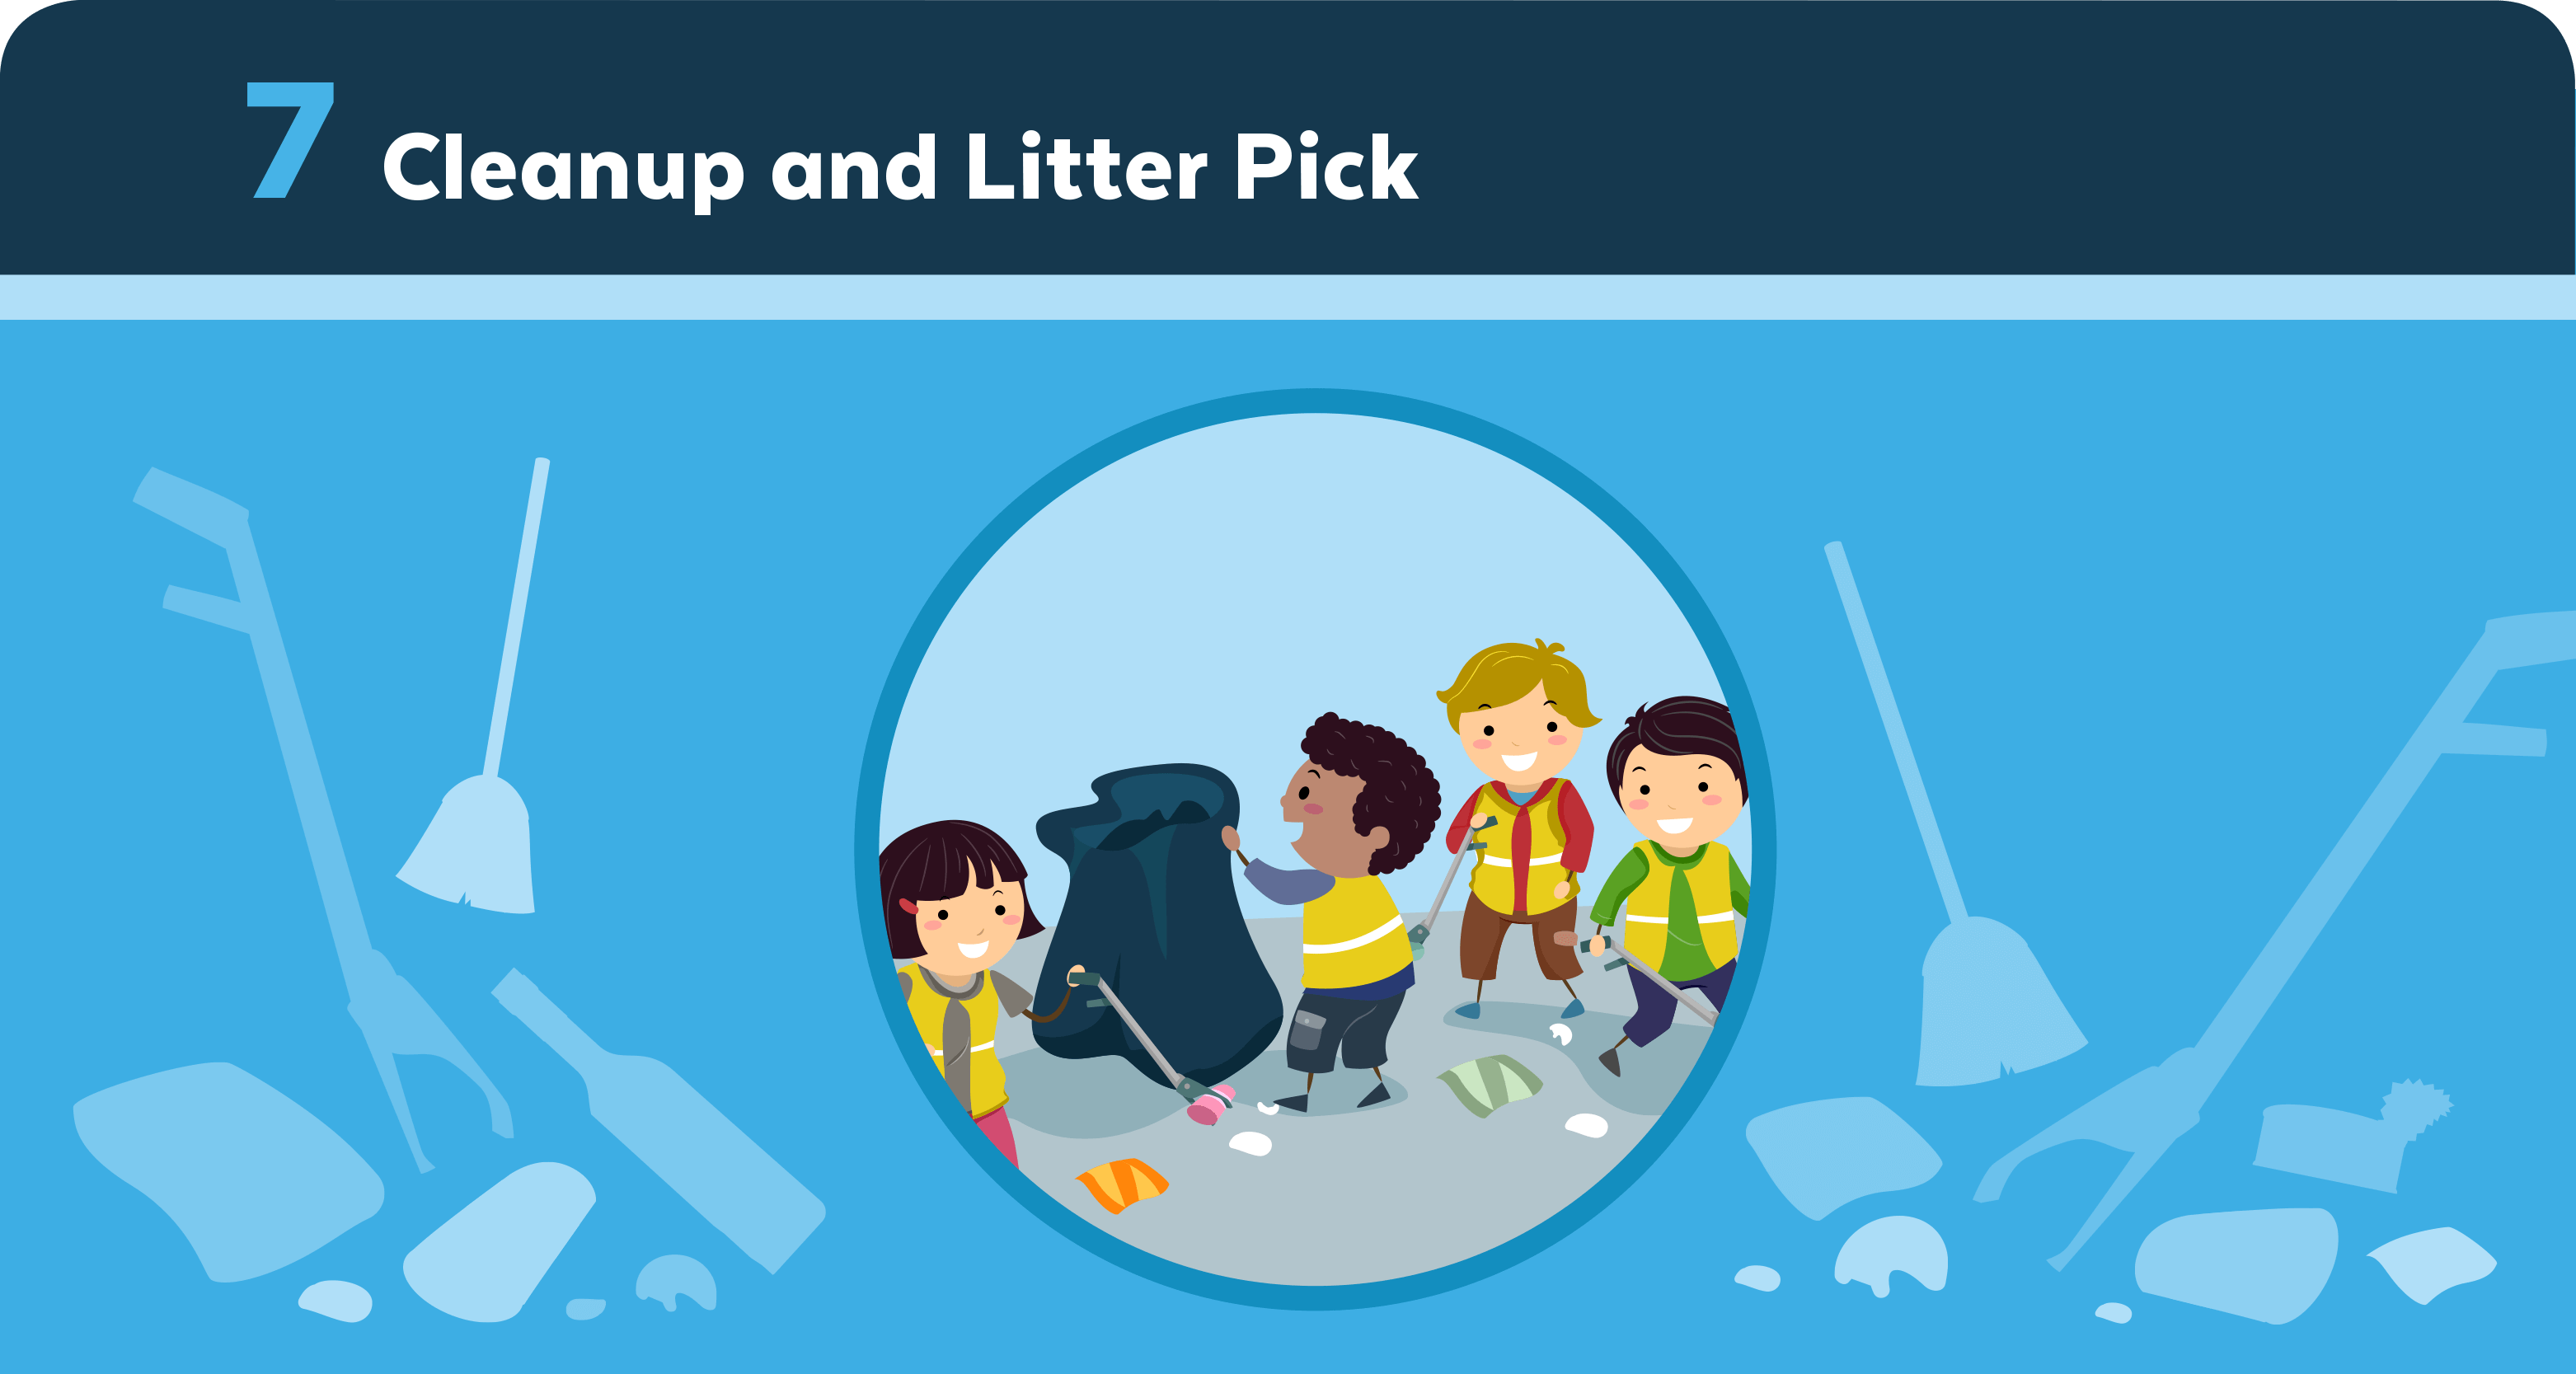 Cleanup and Litter Pick